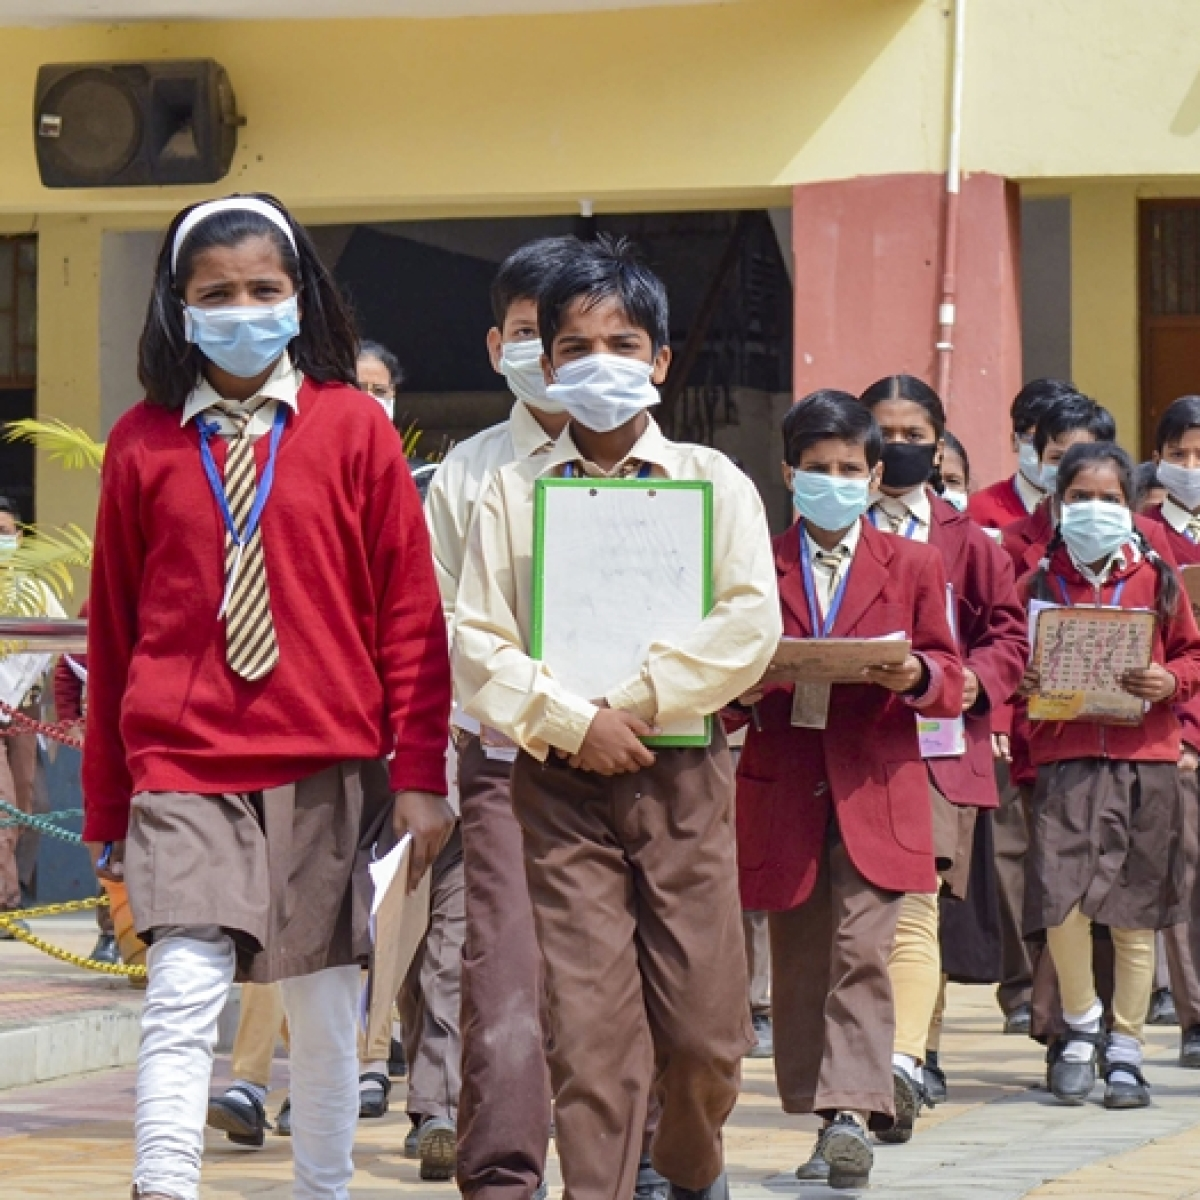 Good news amid coronavirus: All CBSE students from Class 1st to 8th to be promoted, says HRD